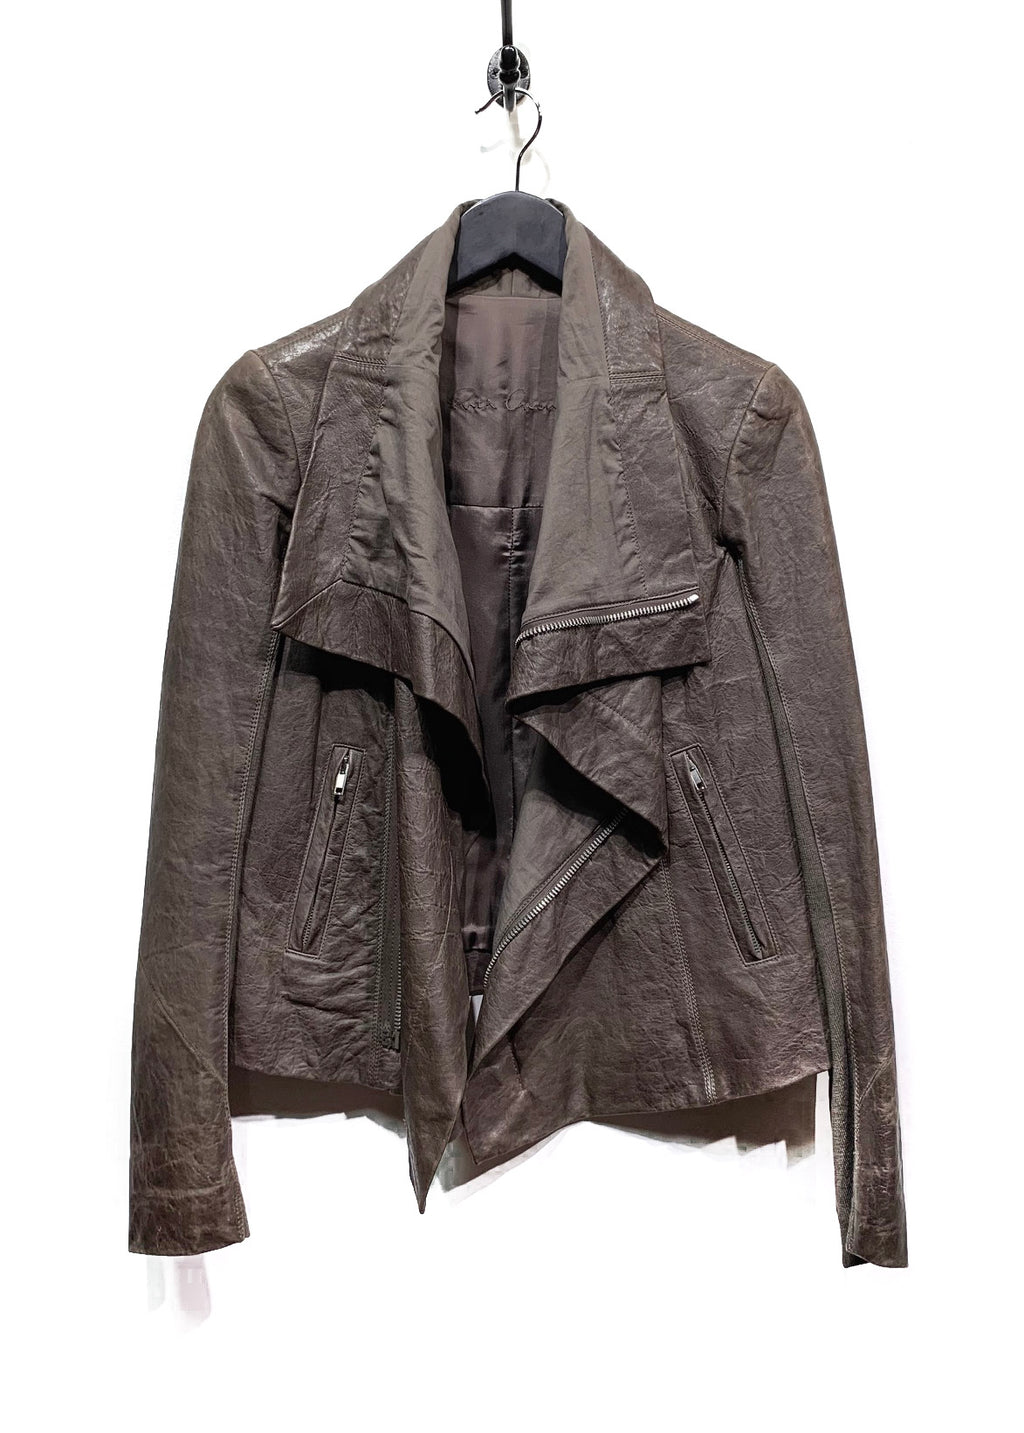 Veste en cuir marron Rick Owens avec insertion de laine